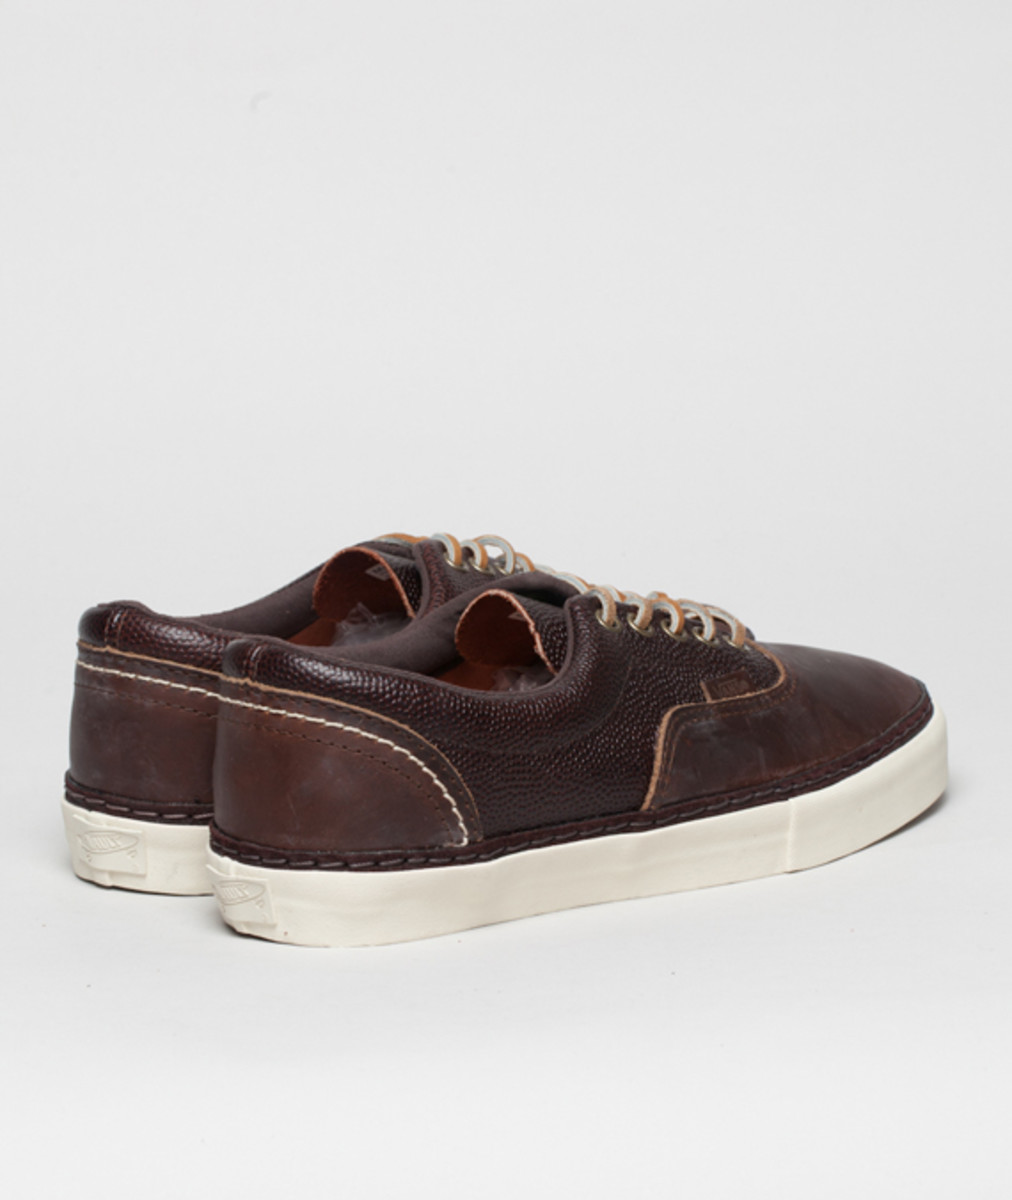 horween-leather-vans-era-hw-lx-02